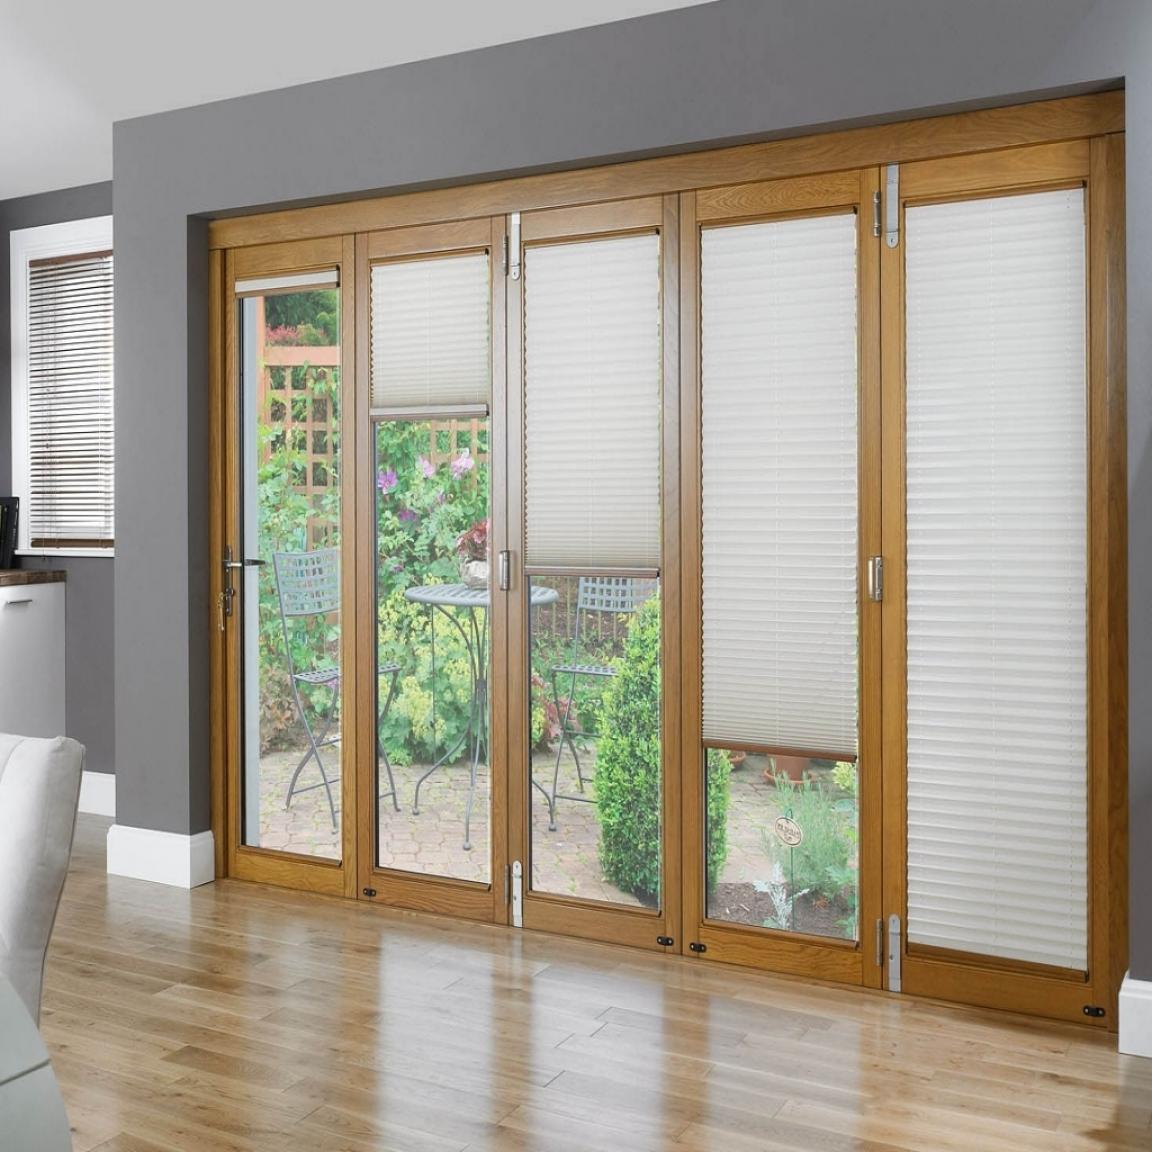 Blinds for sliding doors ideas the best 28 images of patio door drapery double roller blinds - Blinds for sliding french doors ...